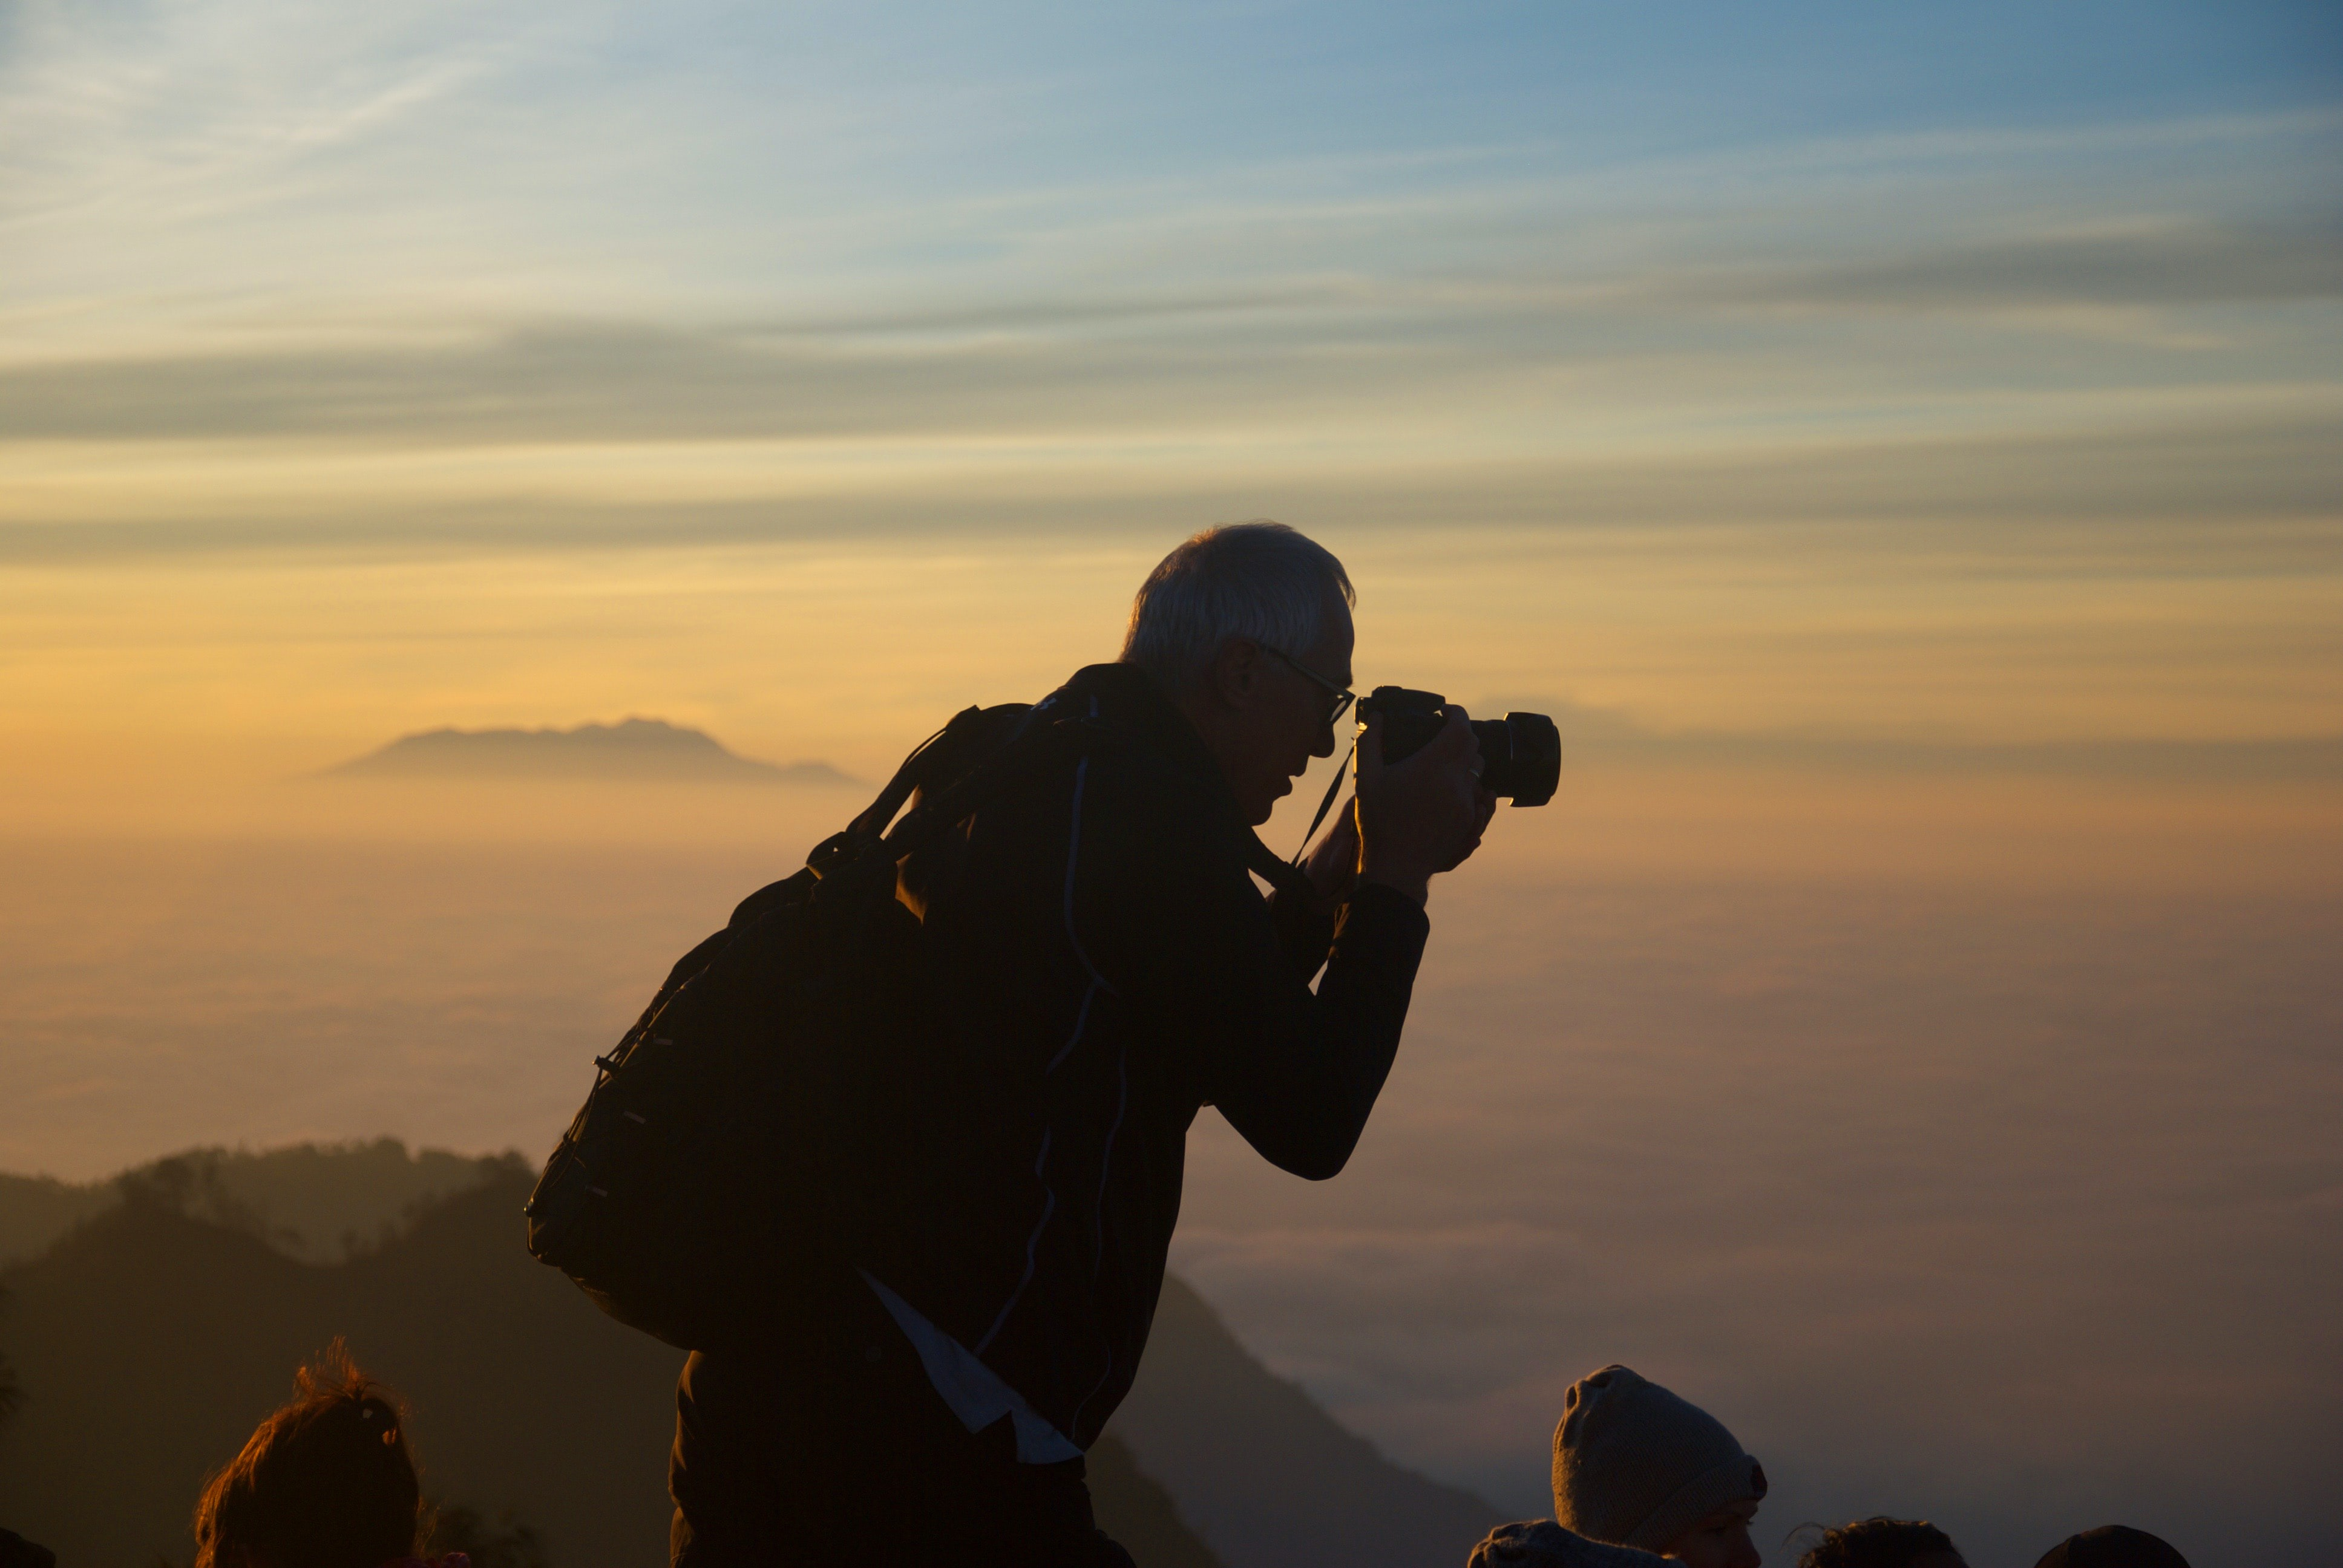 A silhouette of a man taking a photo while on top of a mountain